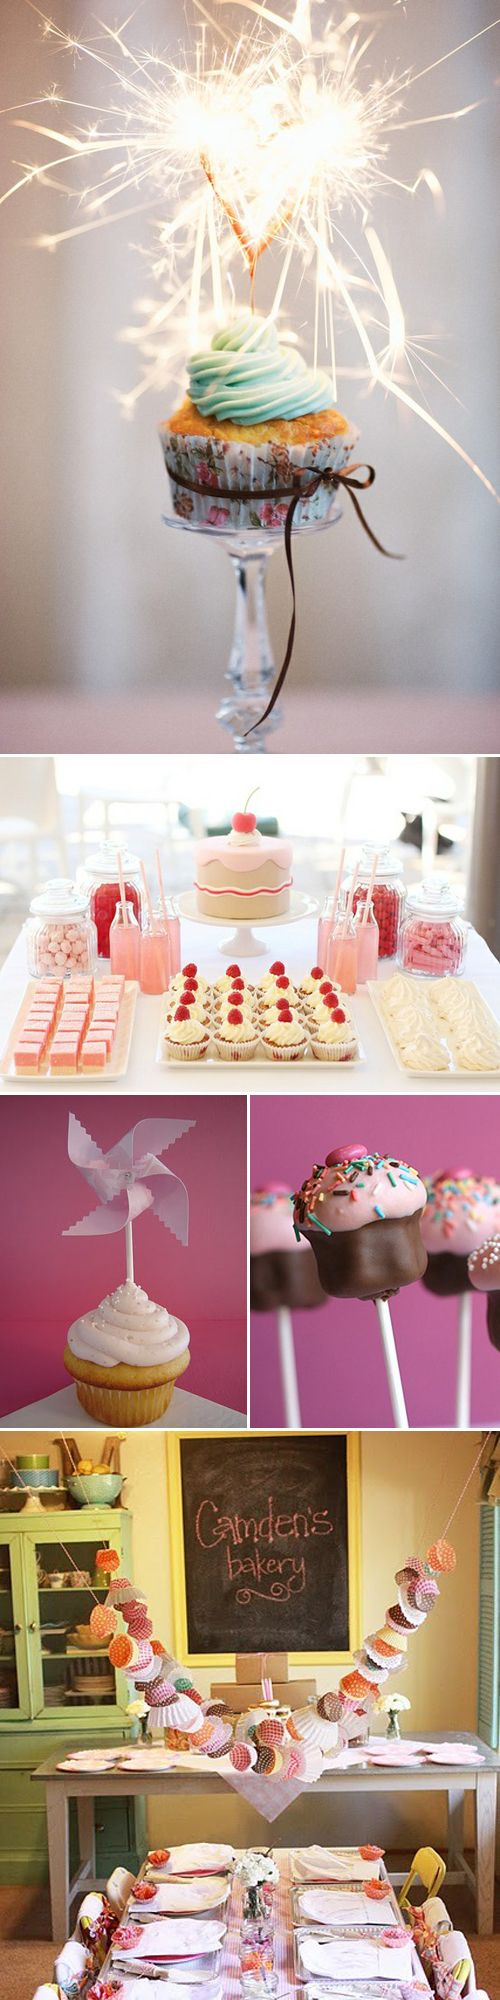 Cupcake Theme Birthday Party Inspiration - love the cupcake wrapper decorations and mini cupcake station